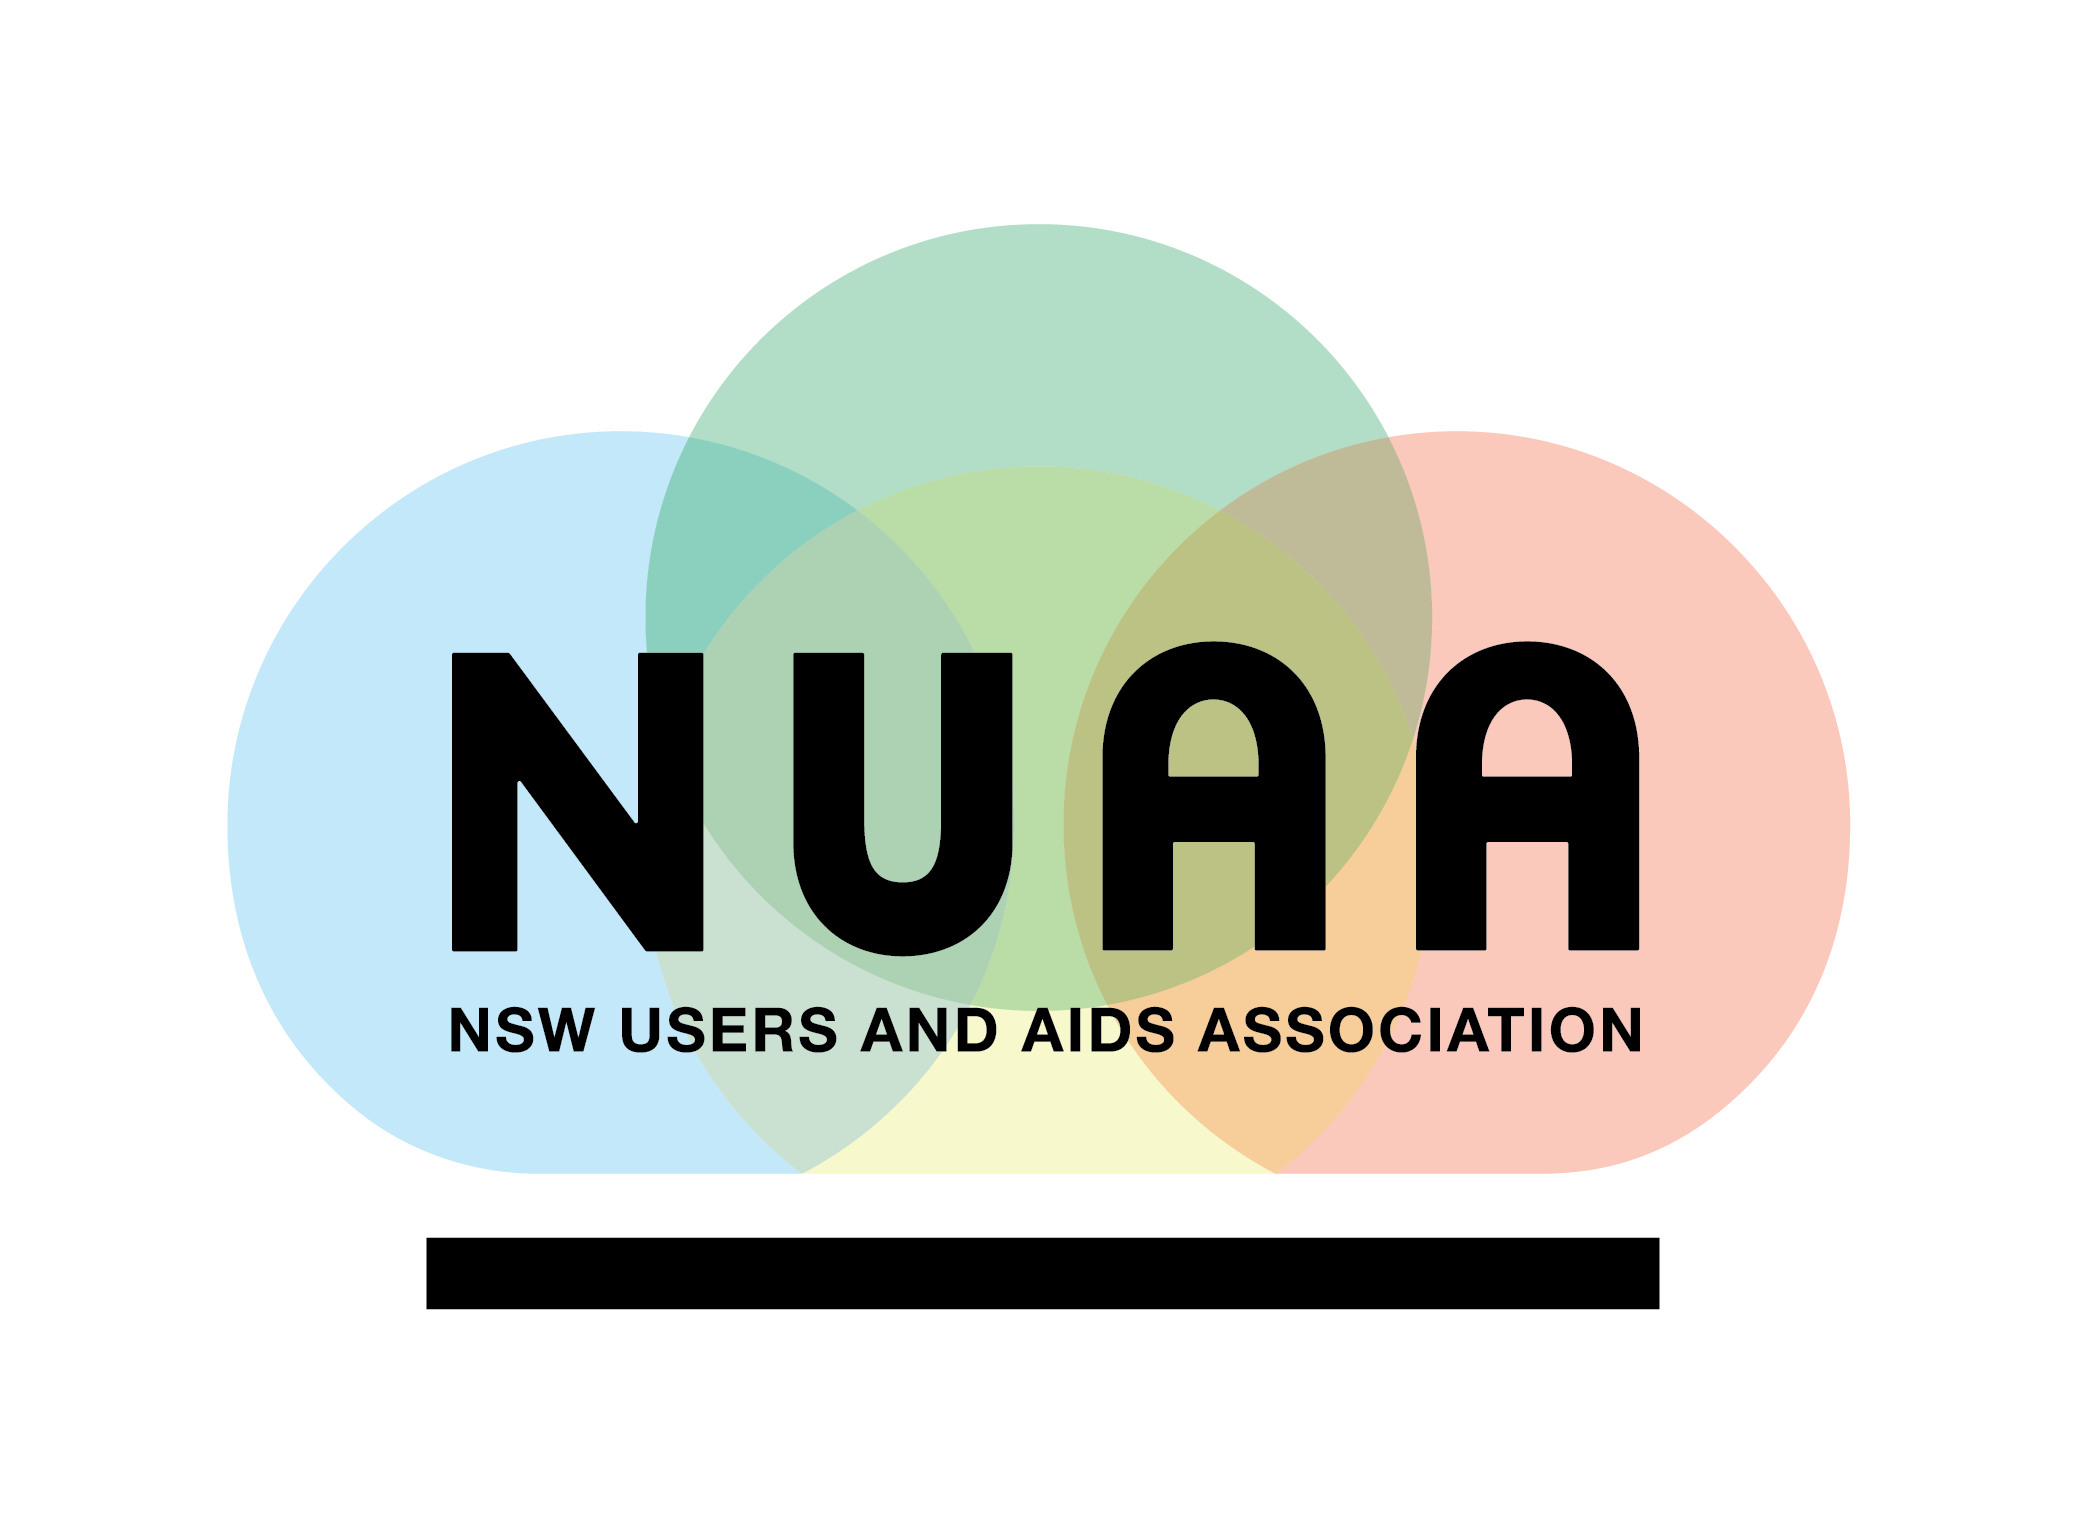 NUAA_Black Text on Colour for Lighter.png